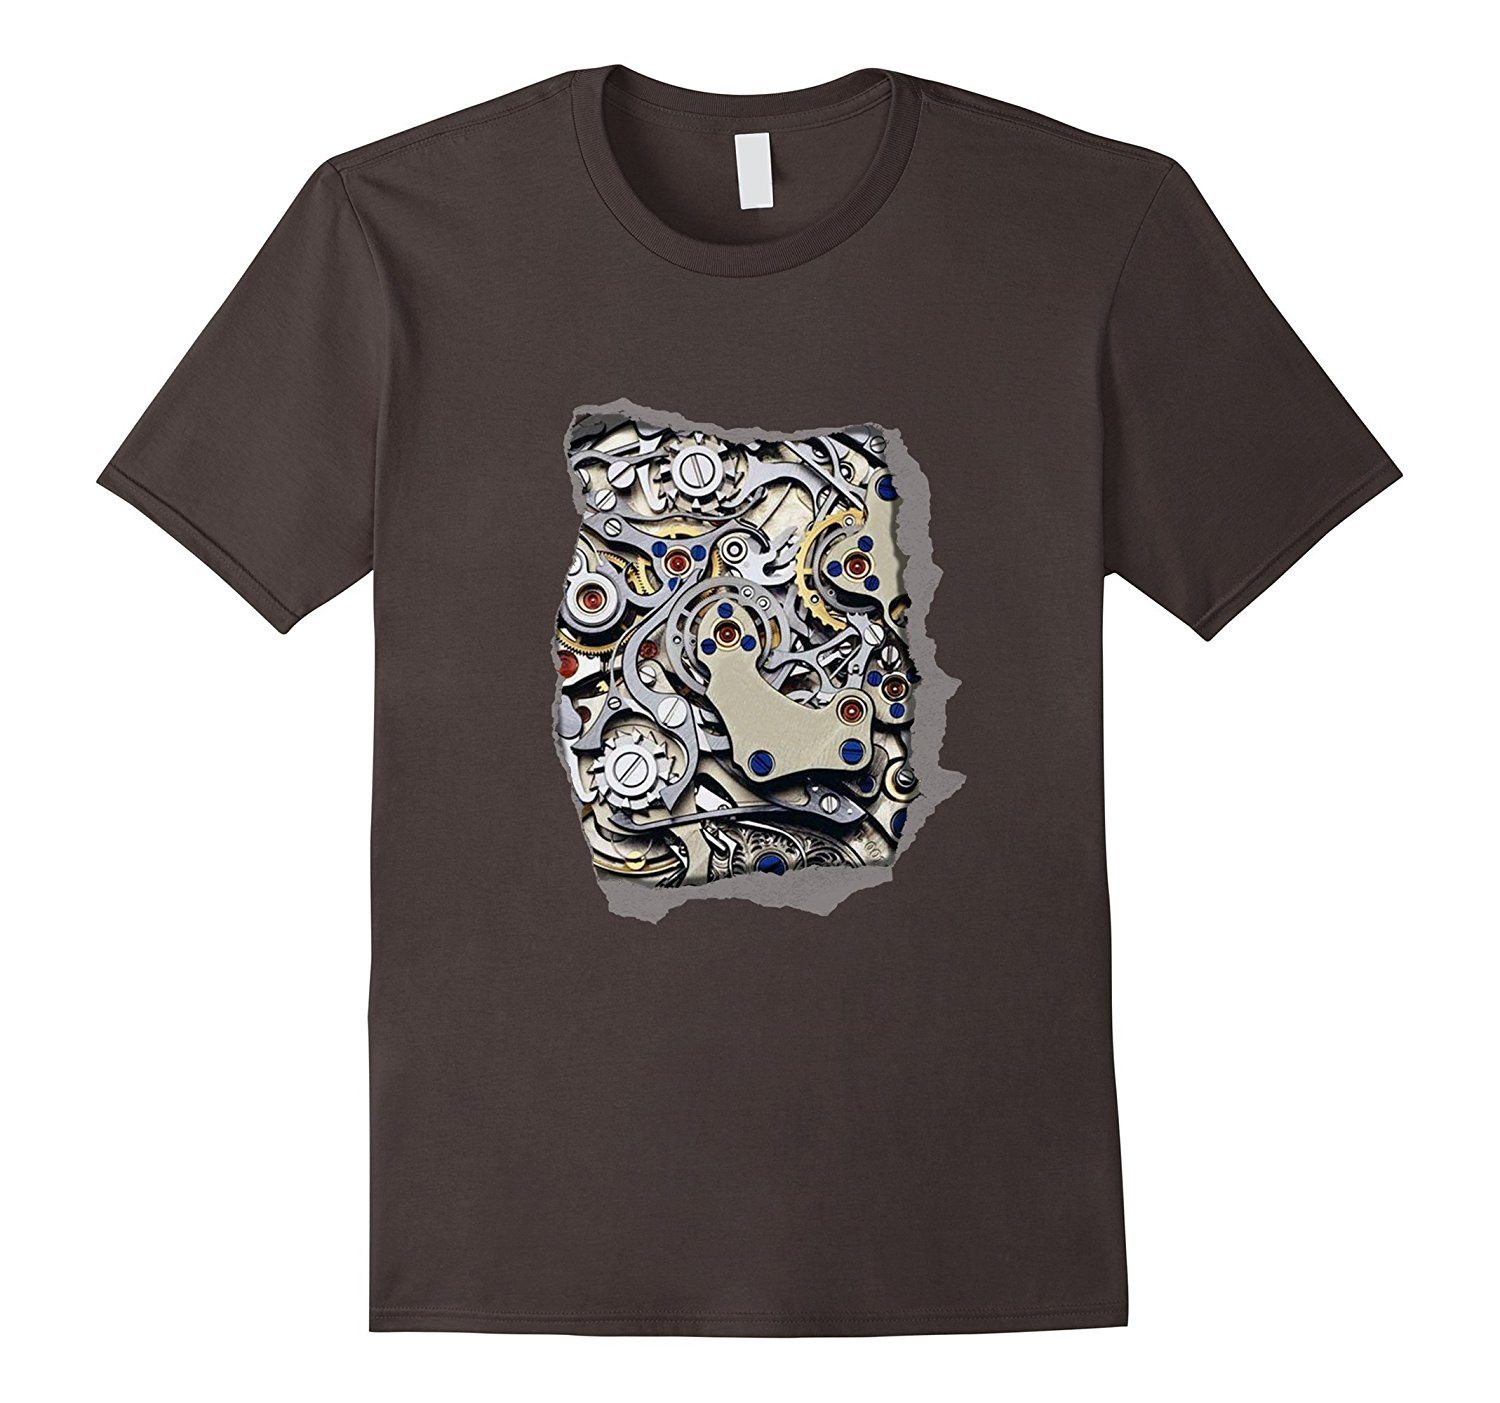 I'm mechanical & my shirt is torn, cool graphic